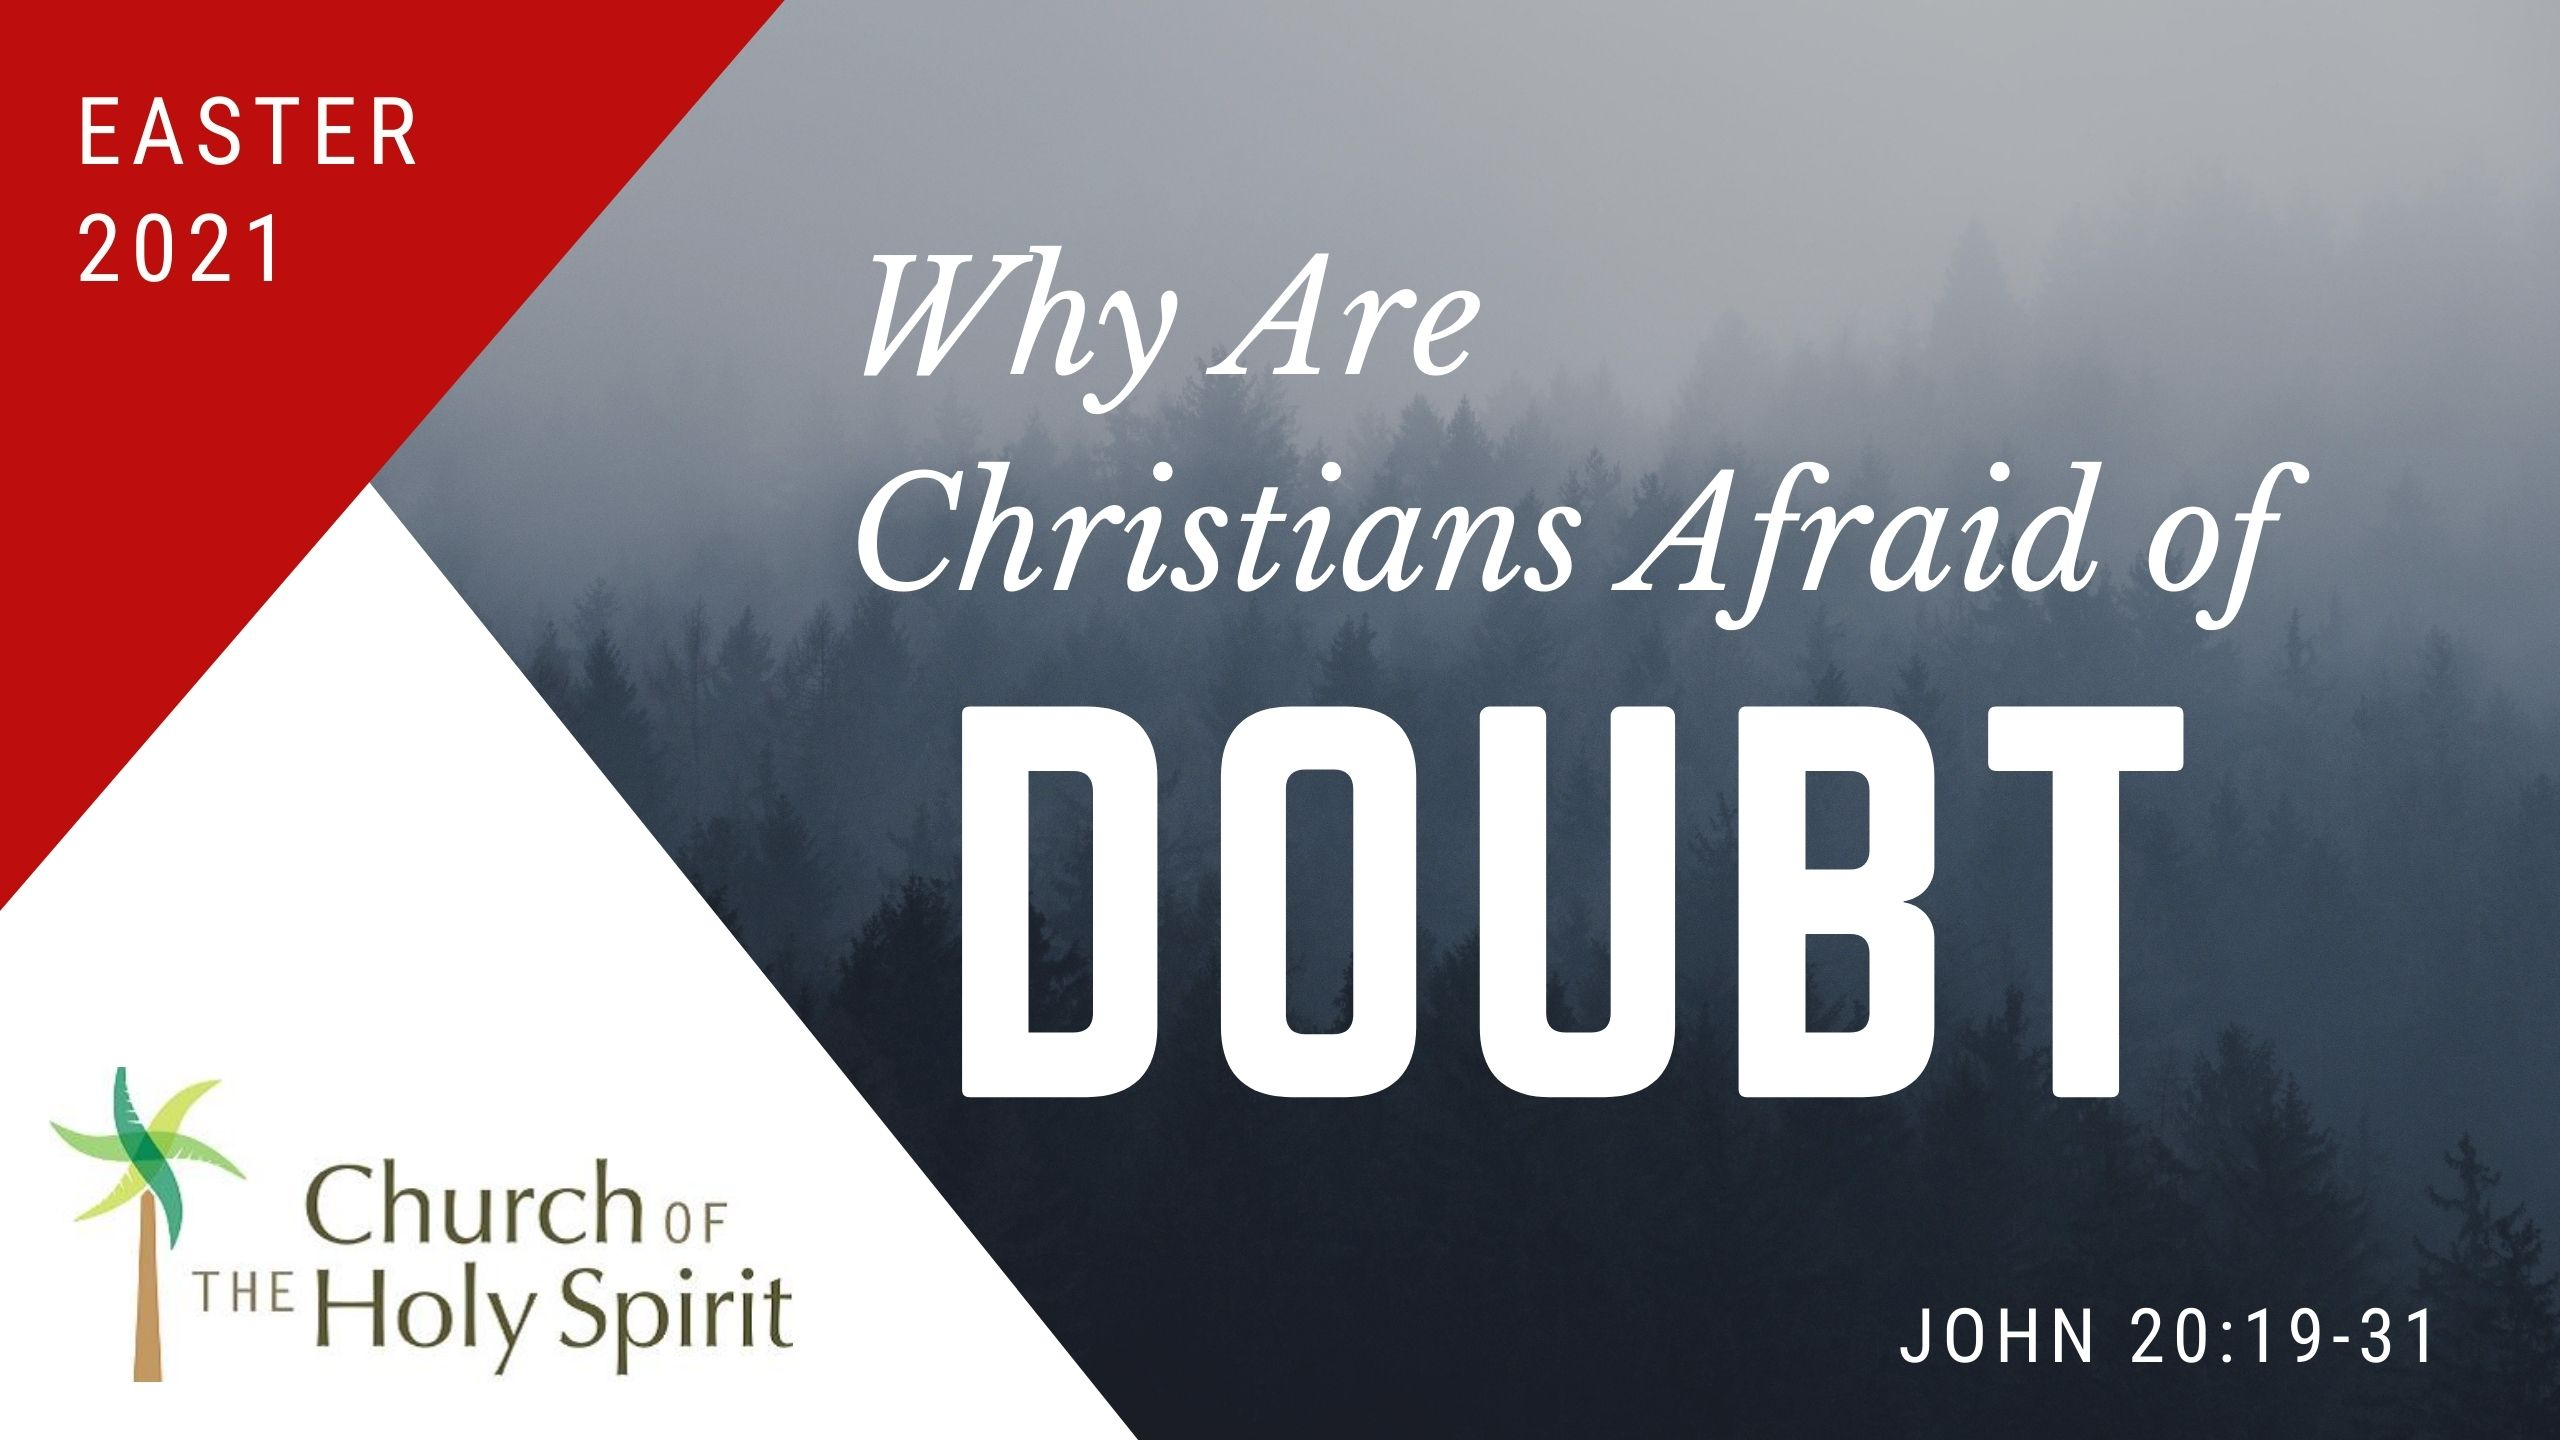 Why are Christians afraid of doubt?